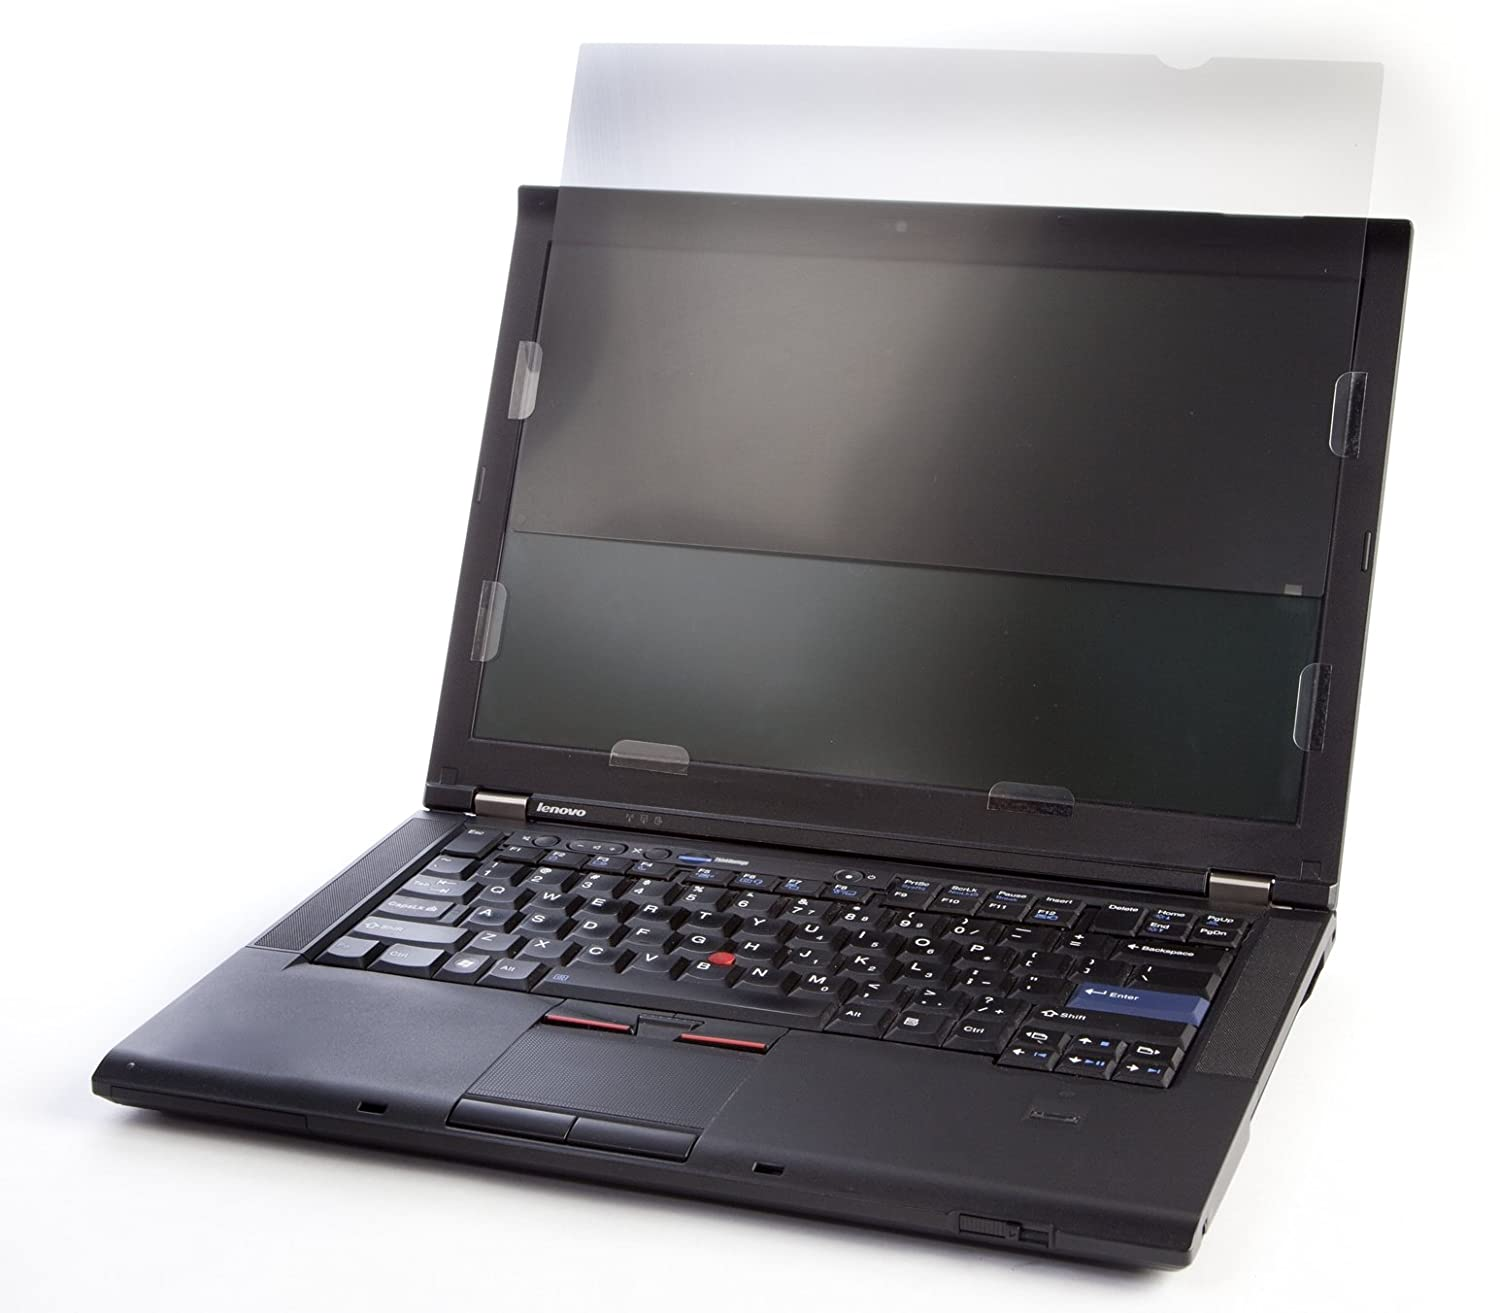 Sound is not working on Lenovo Thinkpad T400 after Windows 10 upgrade